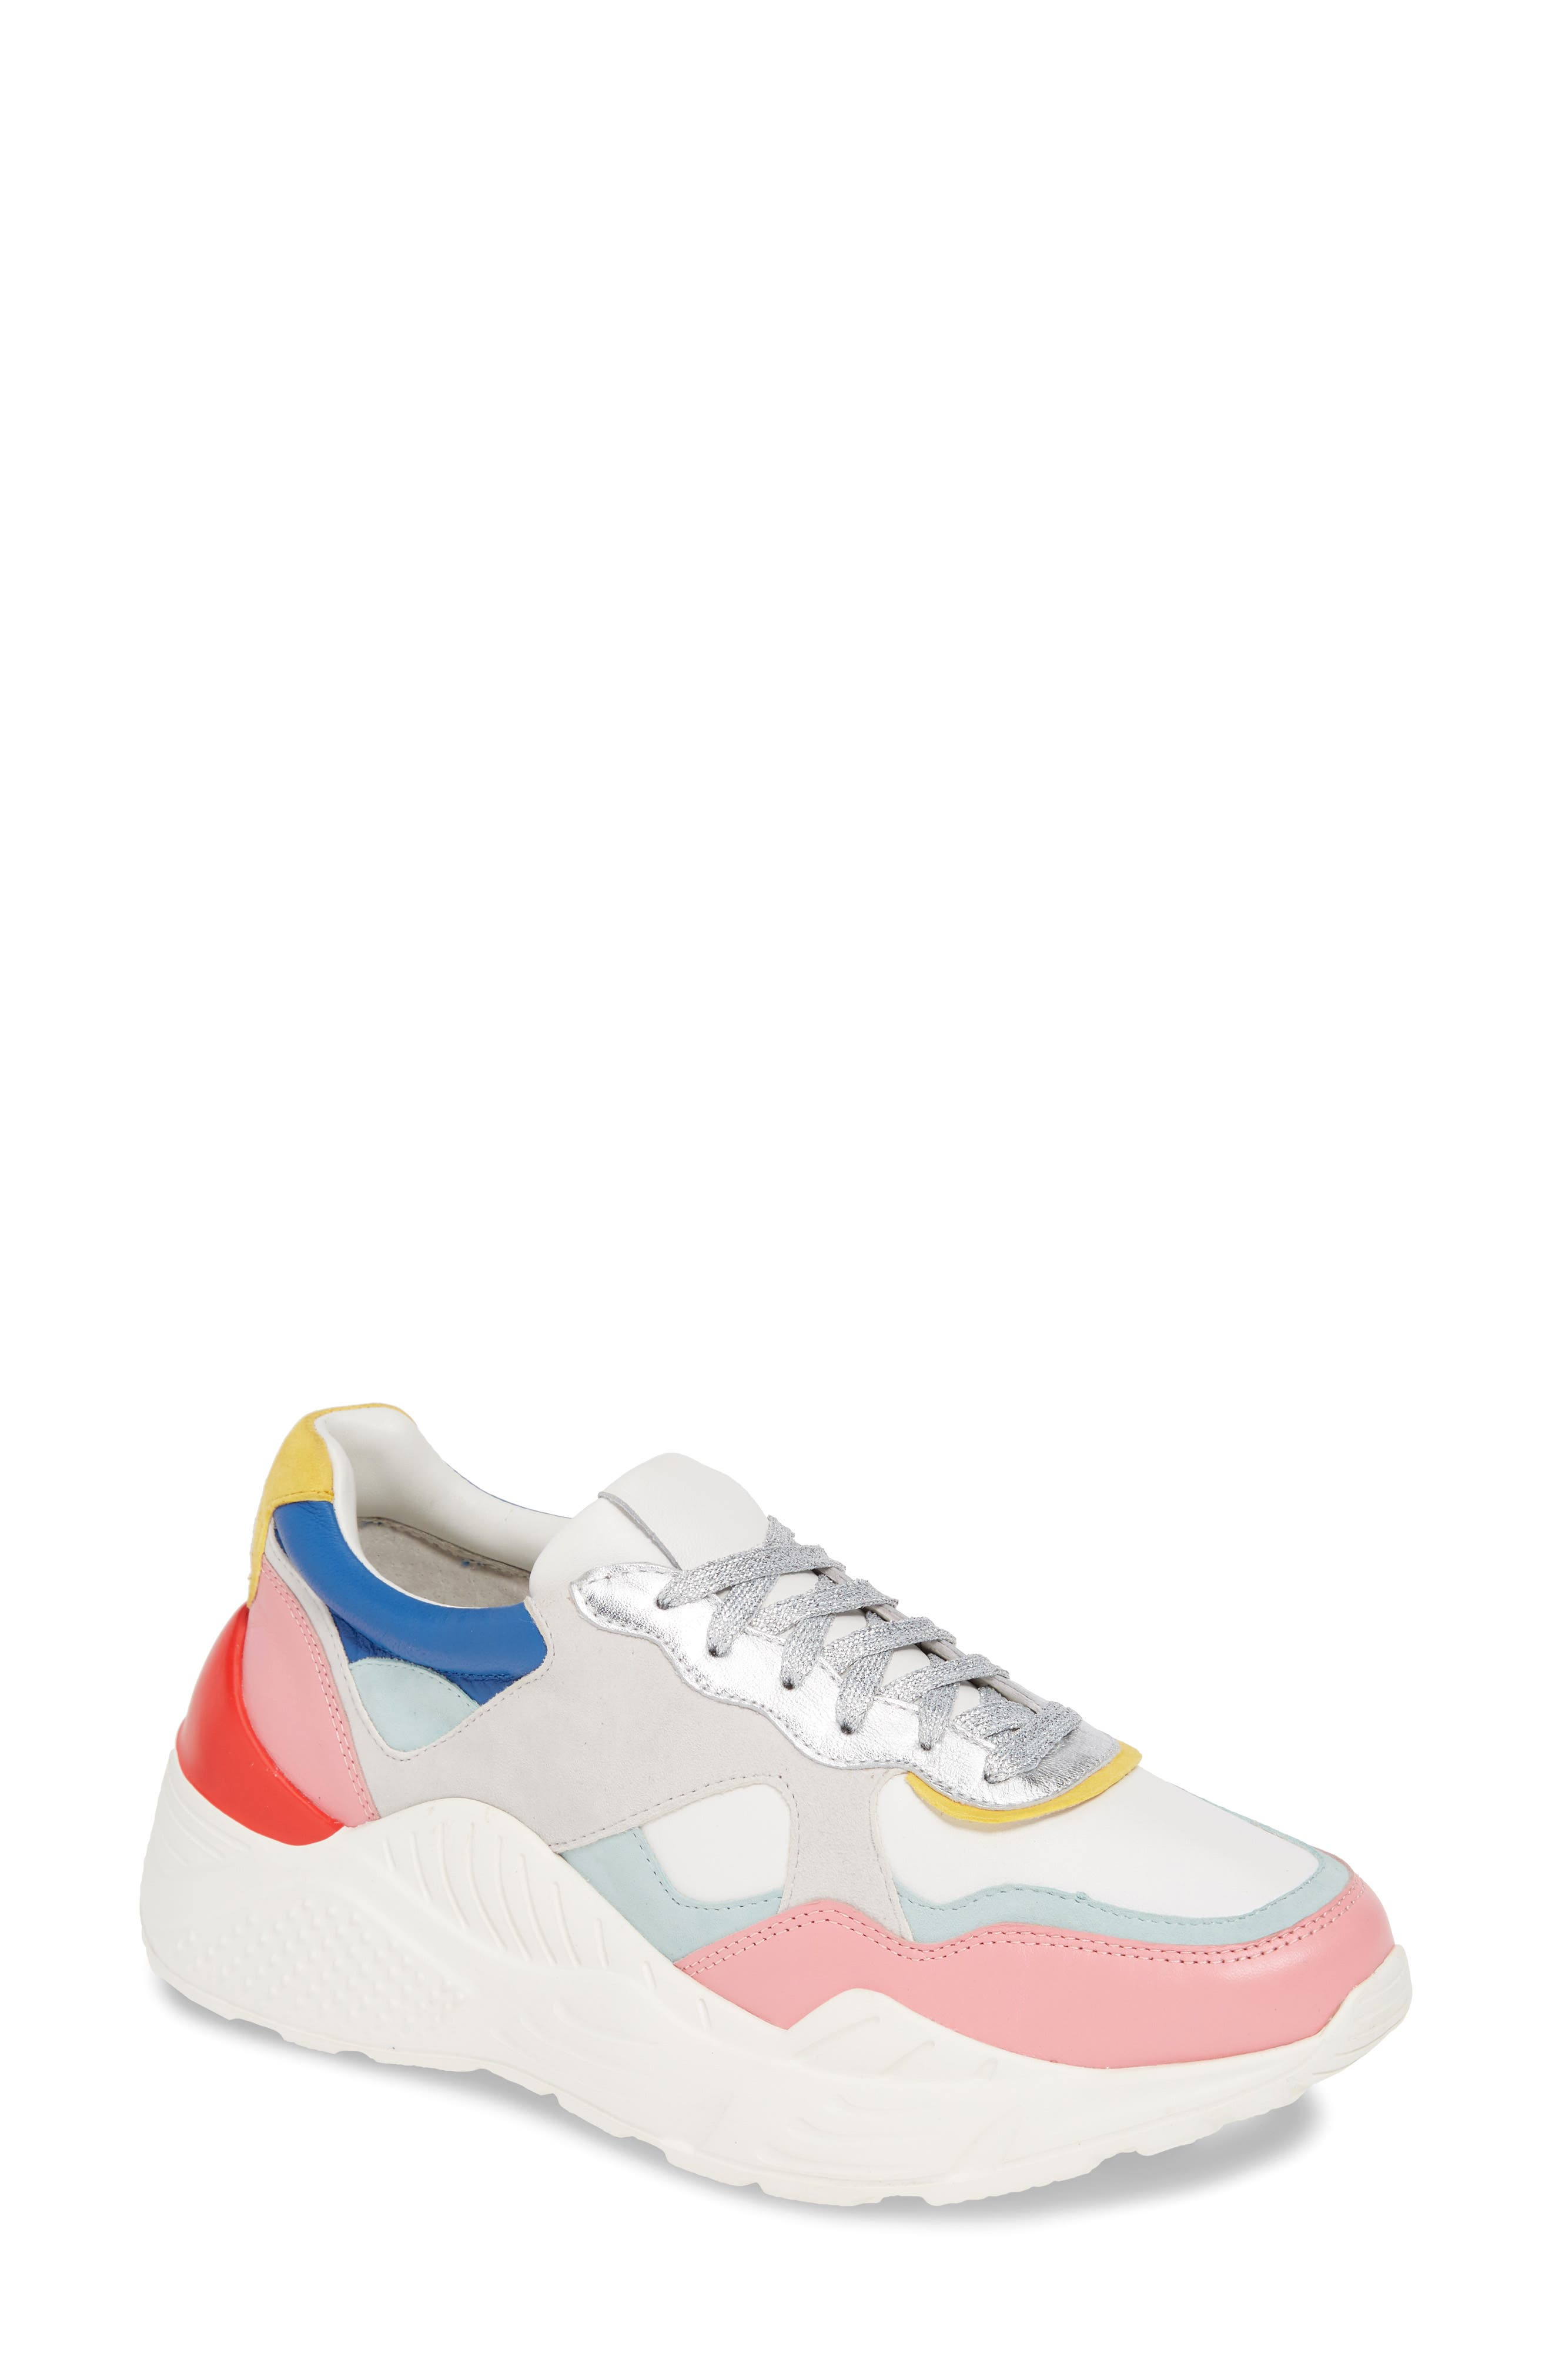 Alice + Olivia Claudine Lace-Up Sneaker, White